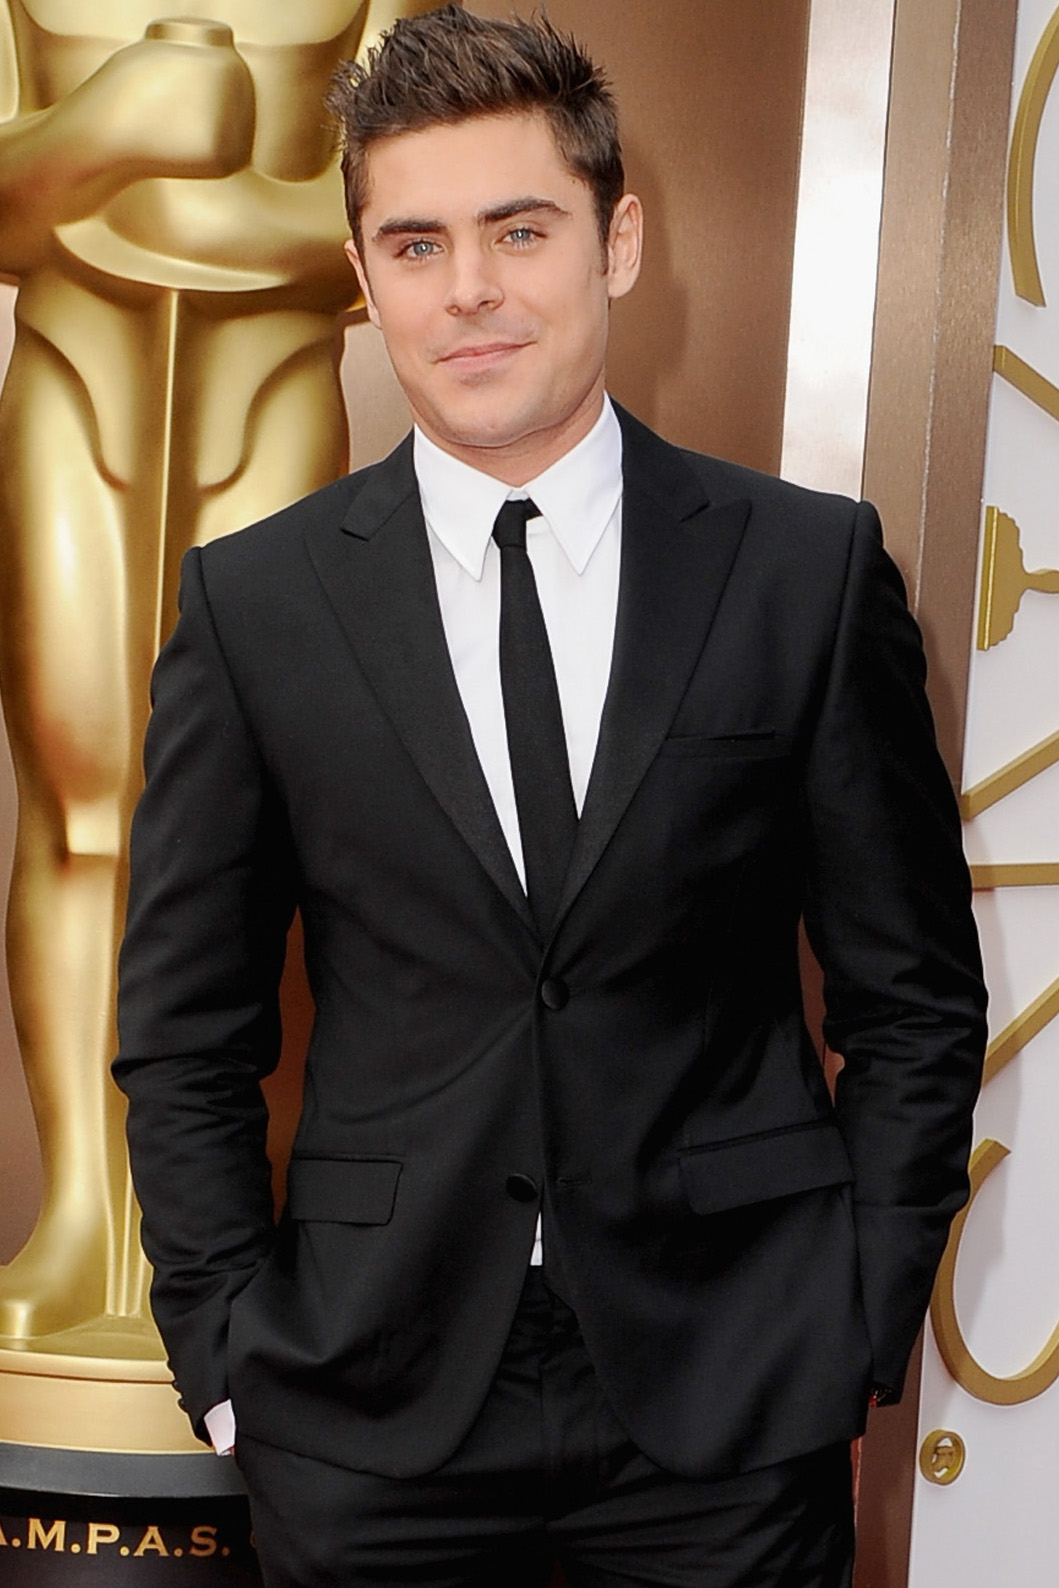 Zac Efron will star in The Associate, an adaptation of the John Grisham novel about a Yale Law grad who is blackmailed by criminals into working for an influential law firm.